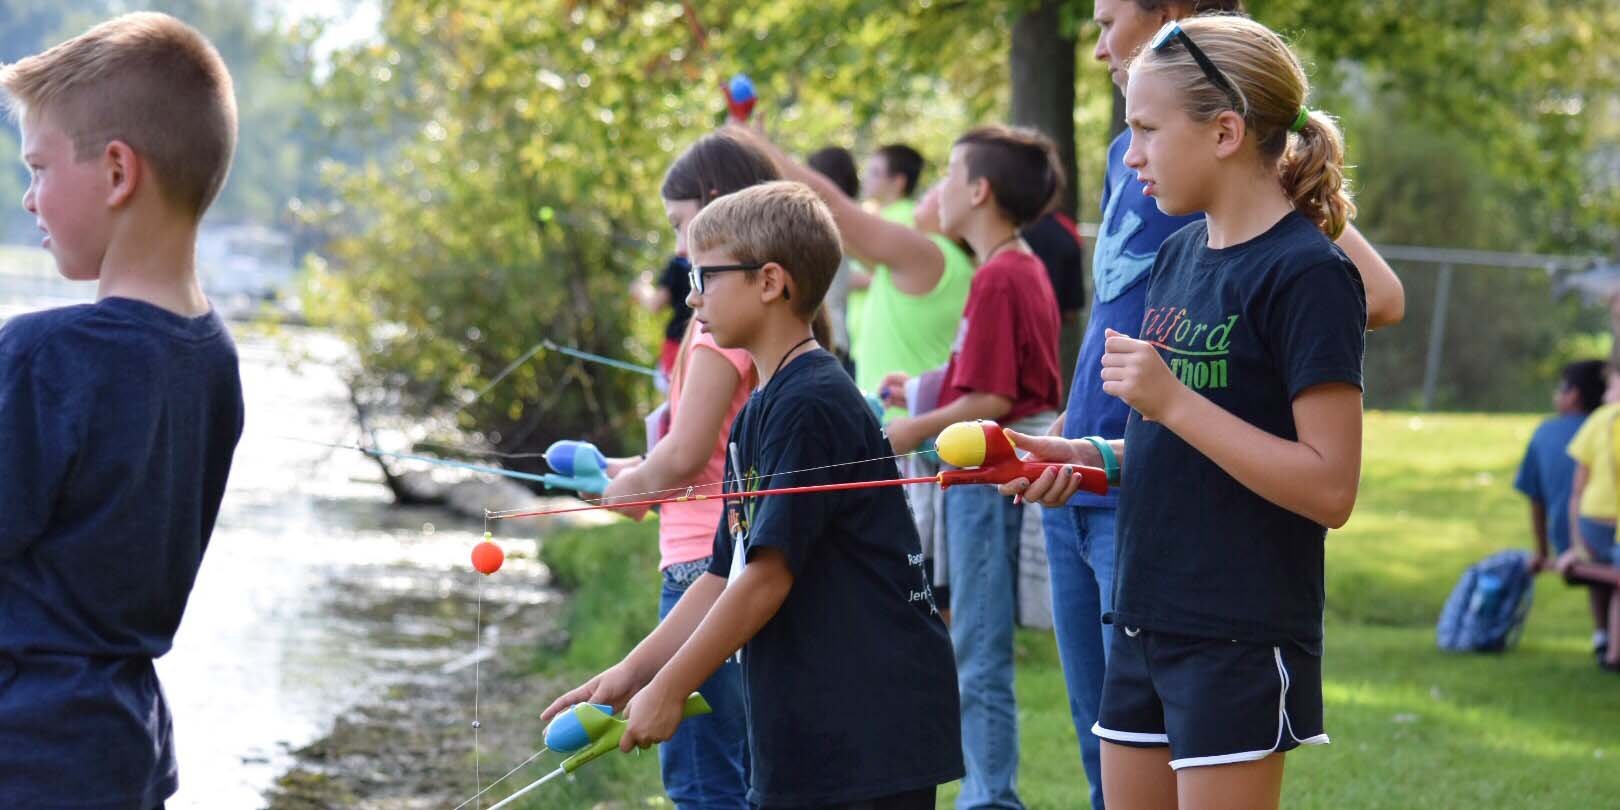 Fourth grade students from schools in Kosciusko County fish in Pike Lake as they learn about how to take care of local lakes and streams.